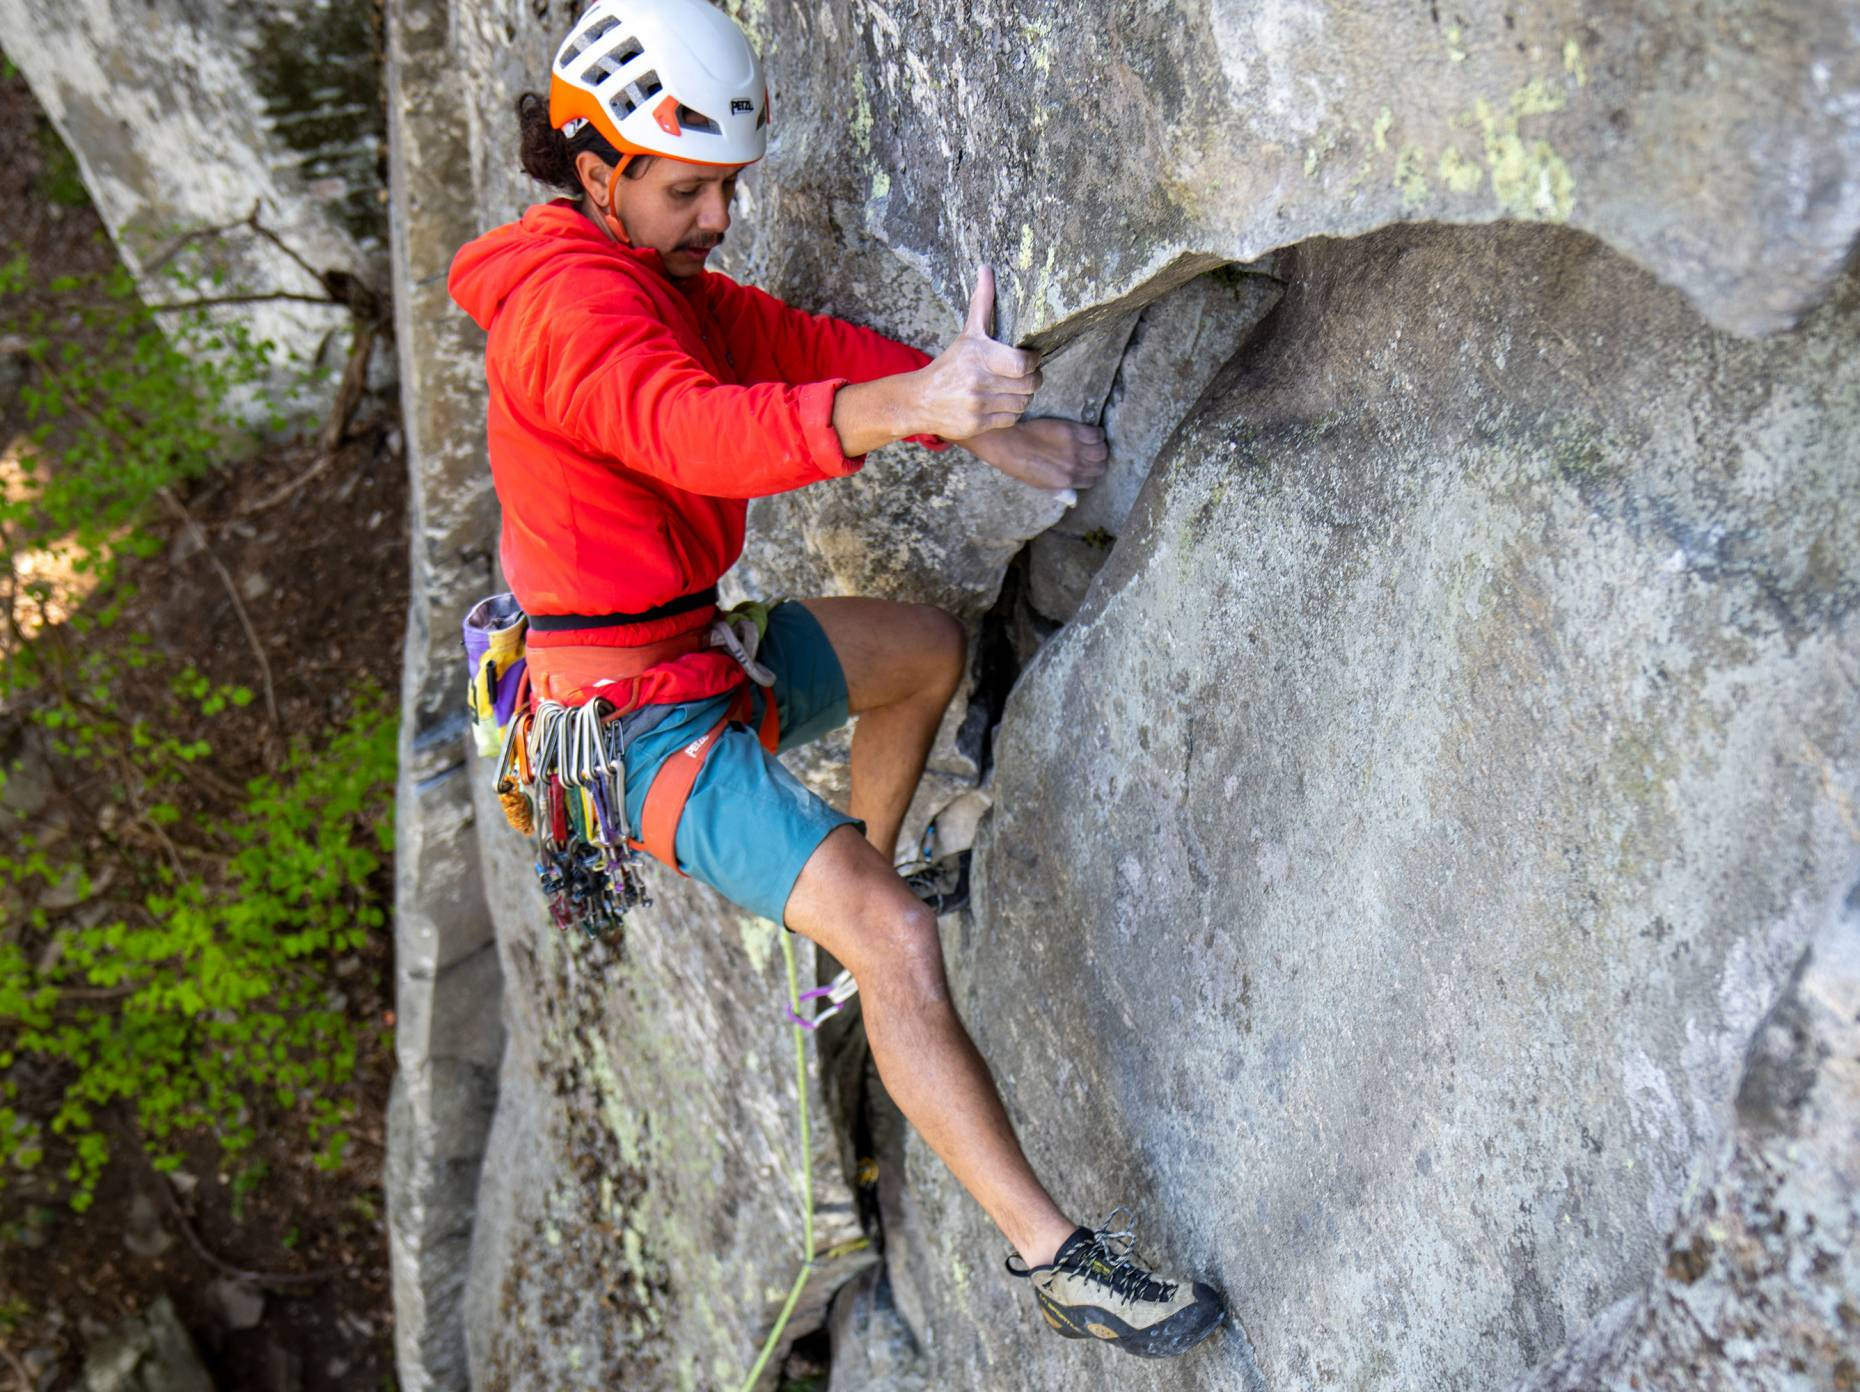 Best Rock Climbing Shoe Review Guide For 2020-2021